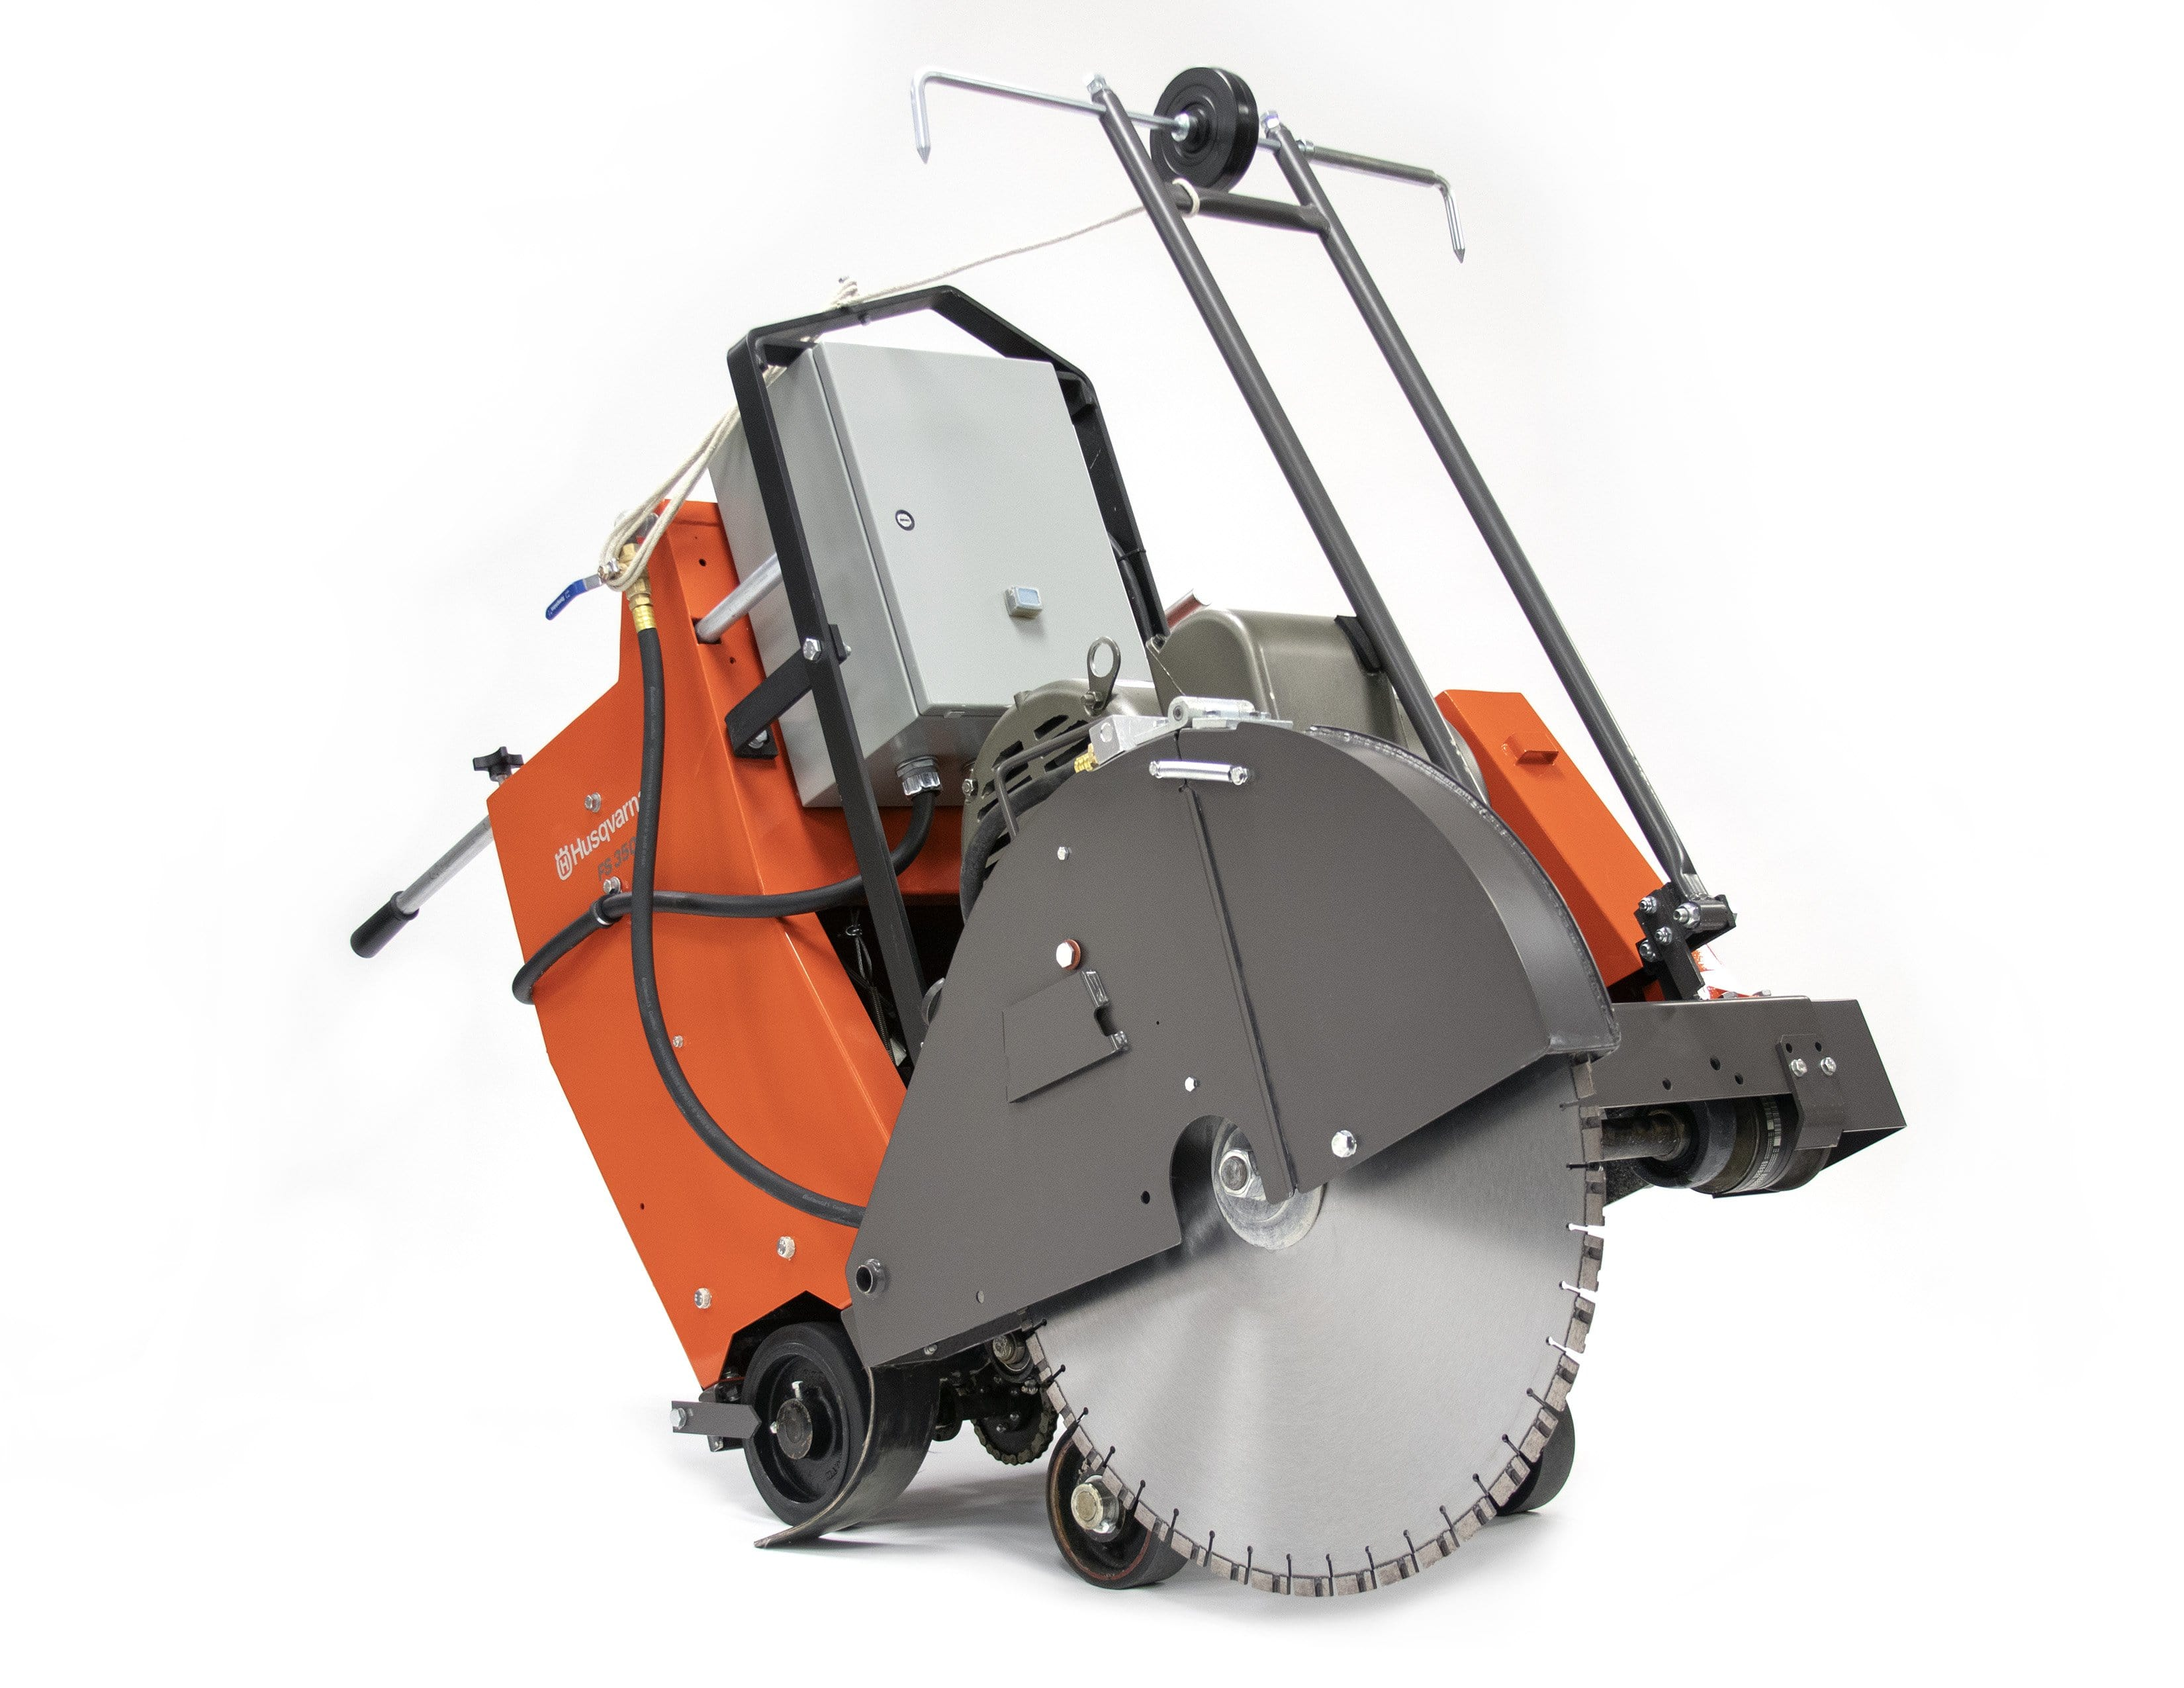 FS3500E Husqvarna Electric Self Propelled Concrete Saw